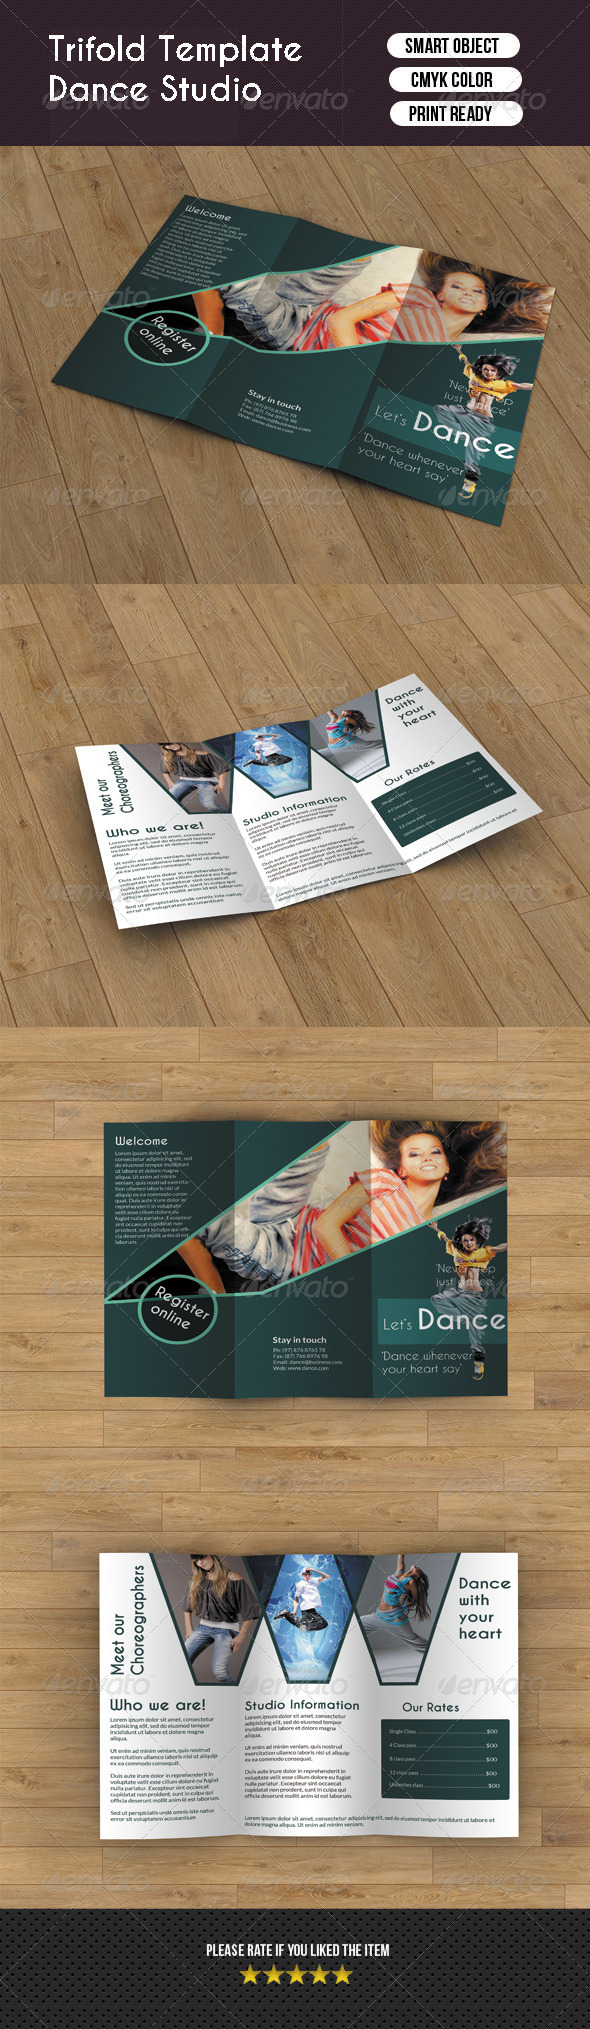 Trifold Brochure- Dance Studio - Informational Brochures